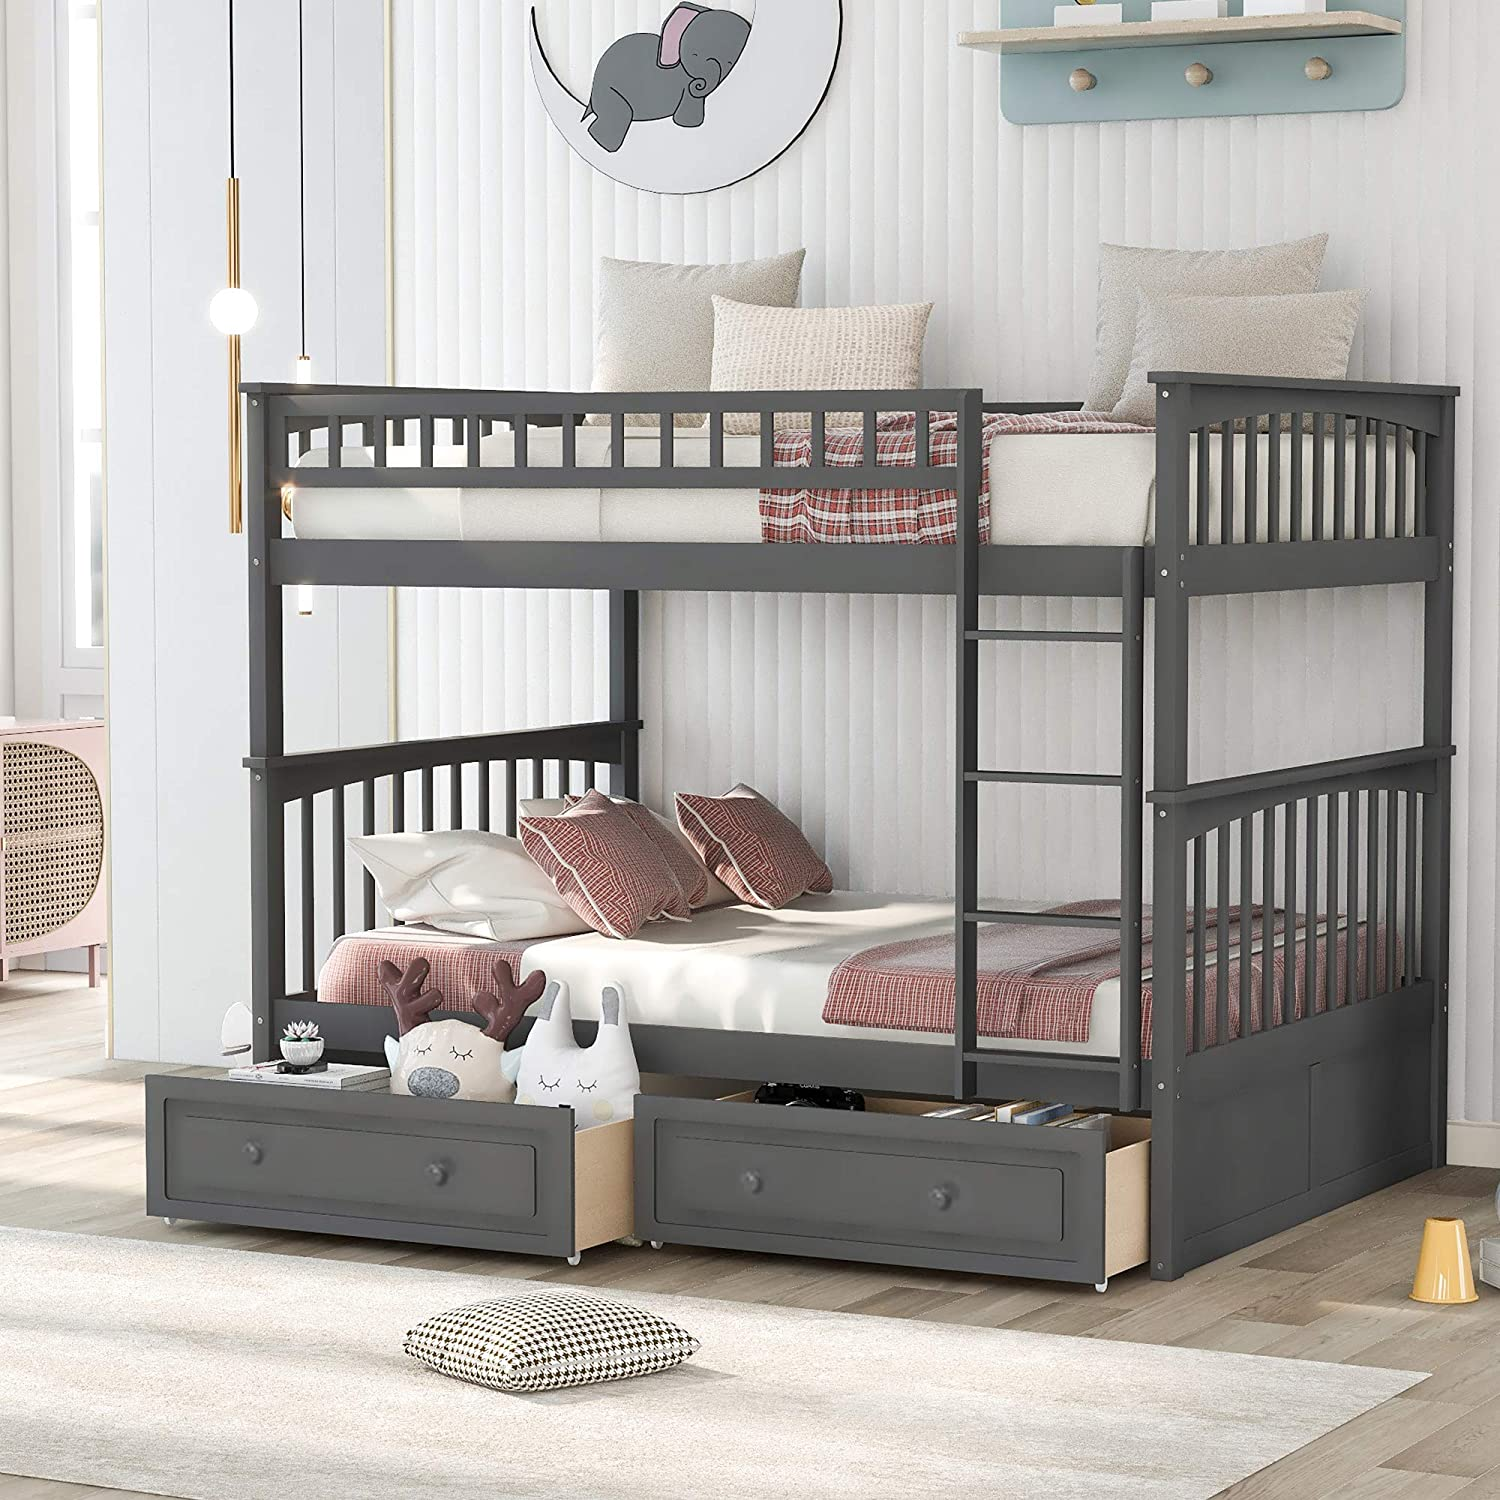 P PURLOVE Full Over Bunk Product OFFicial Bed Drawers with Wood 2